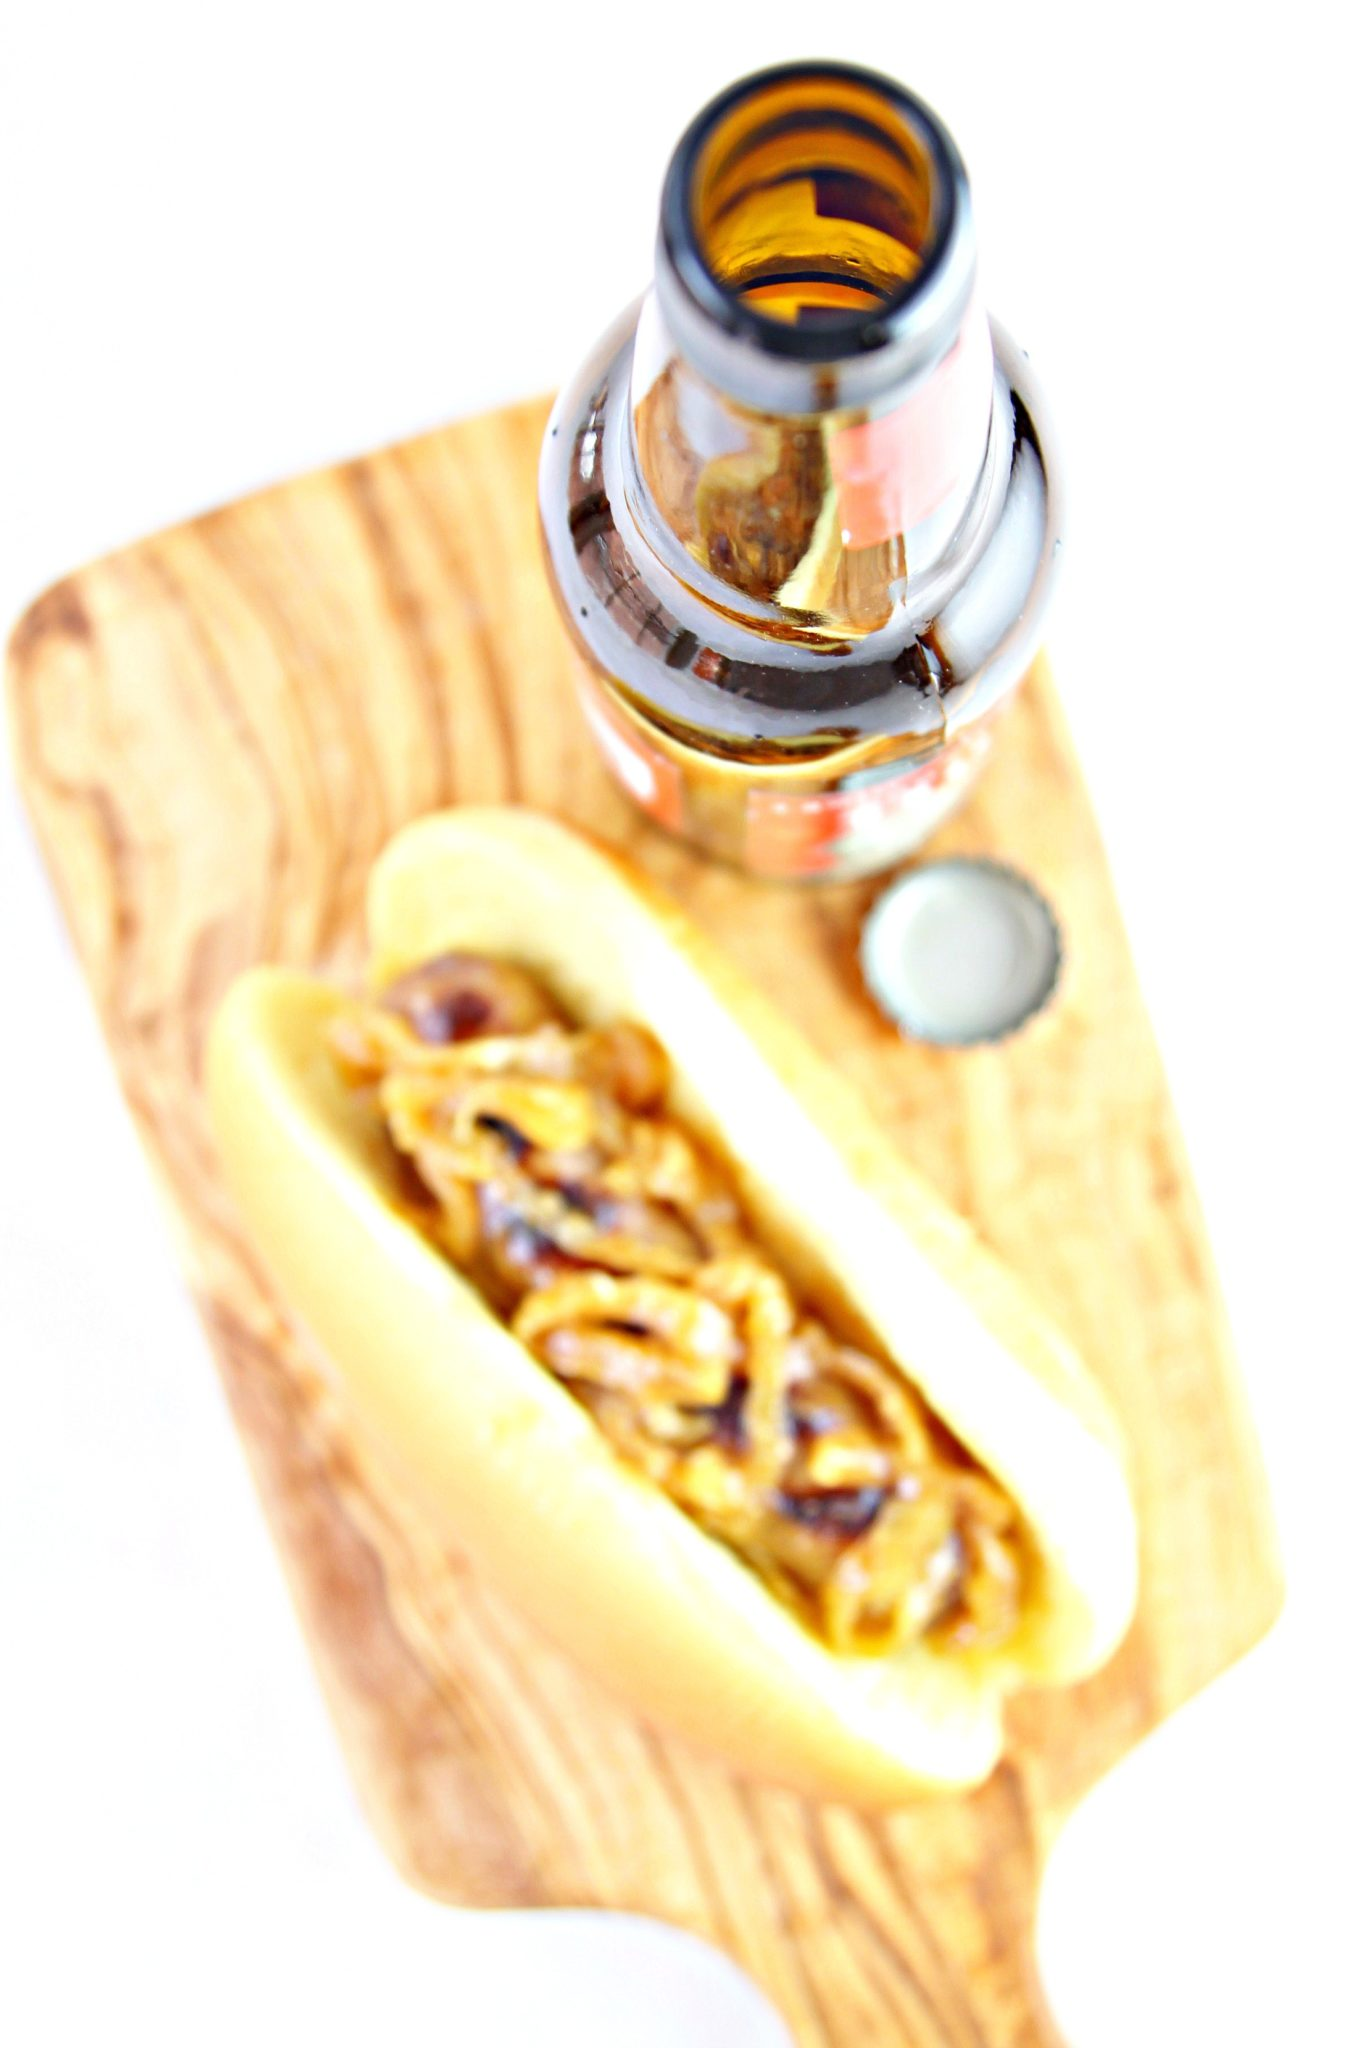 beer brats on serving board